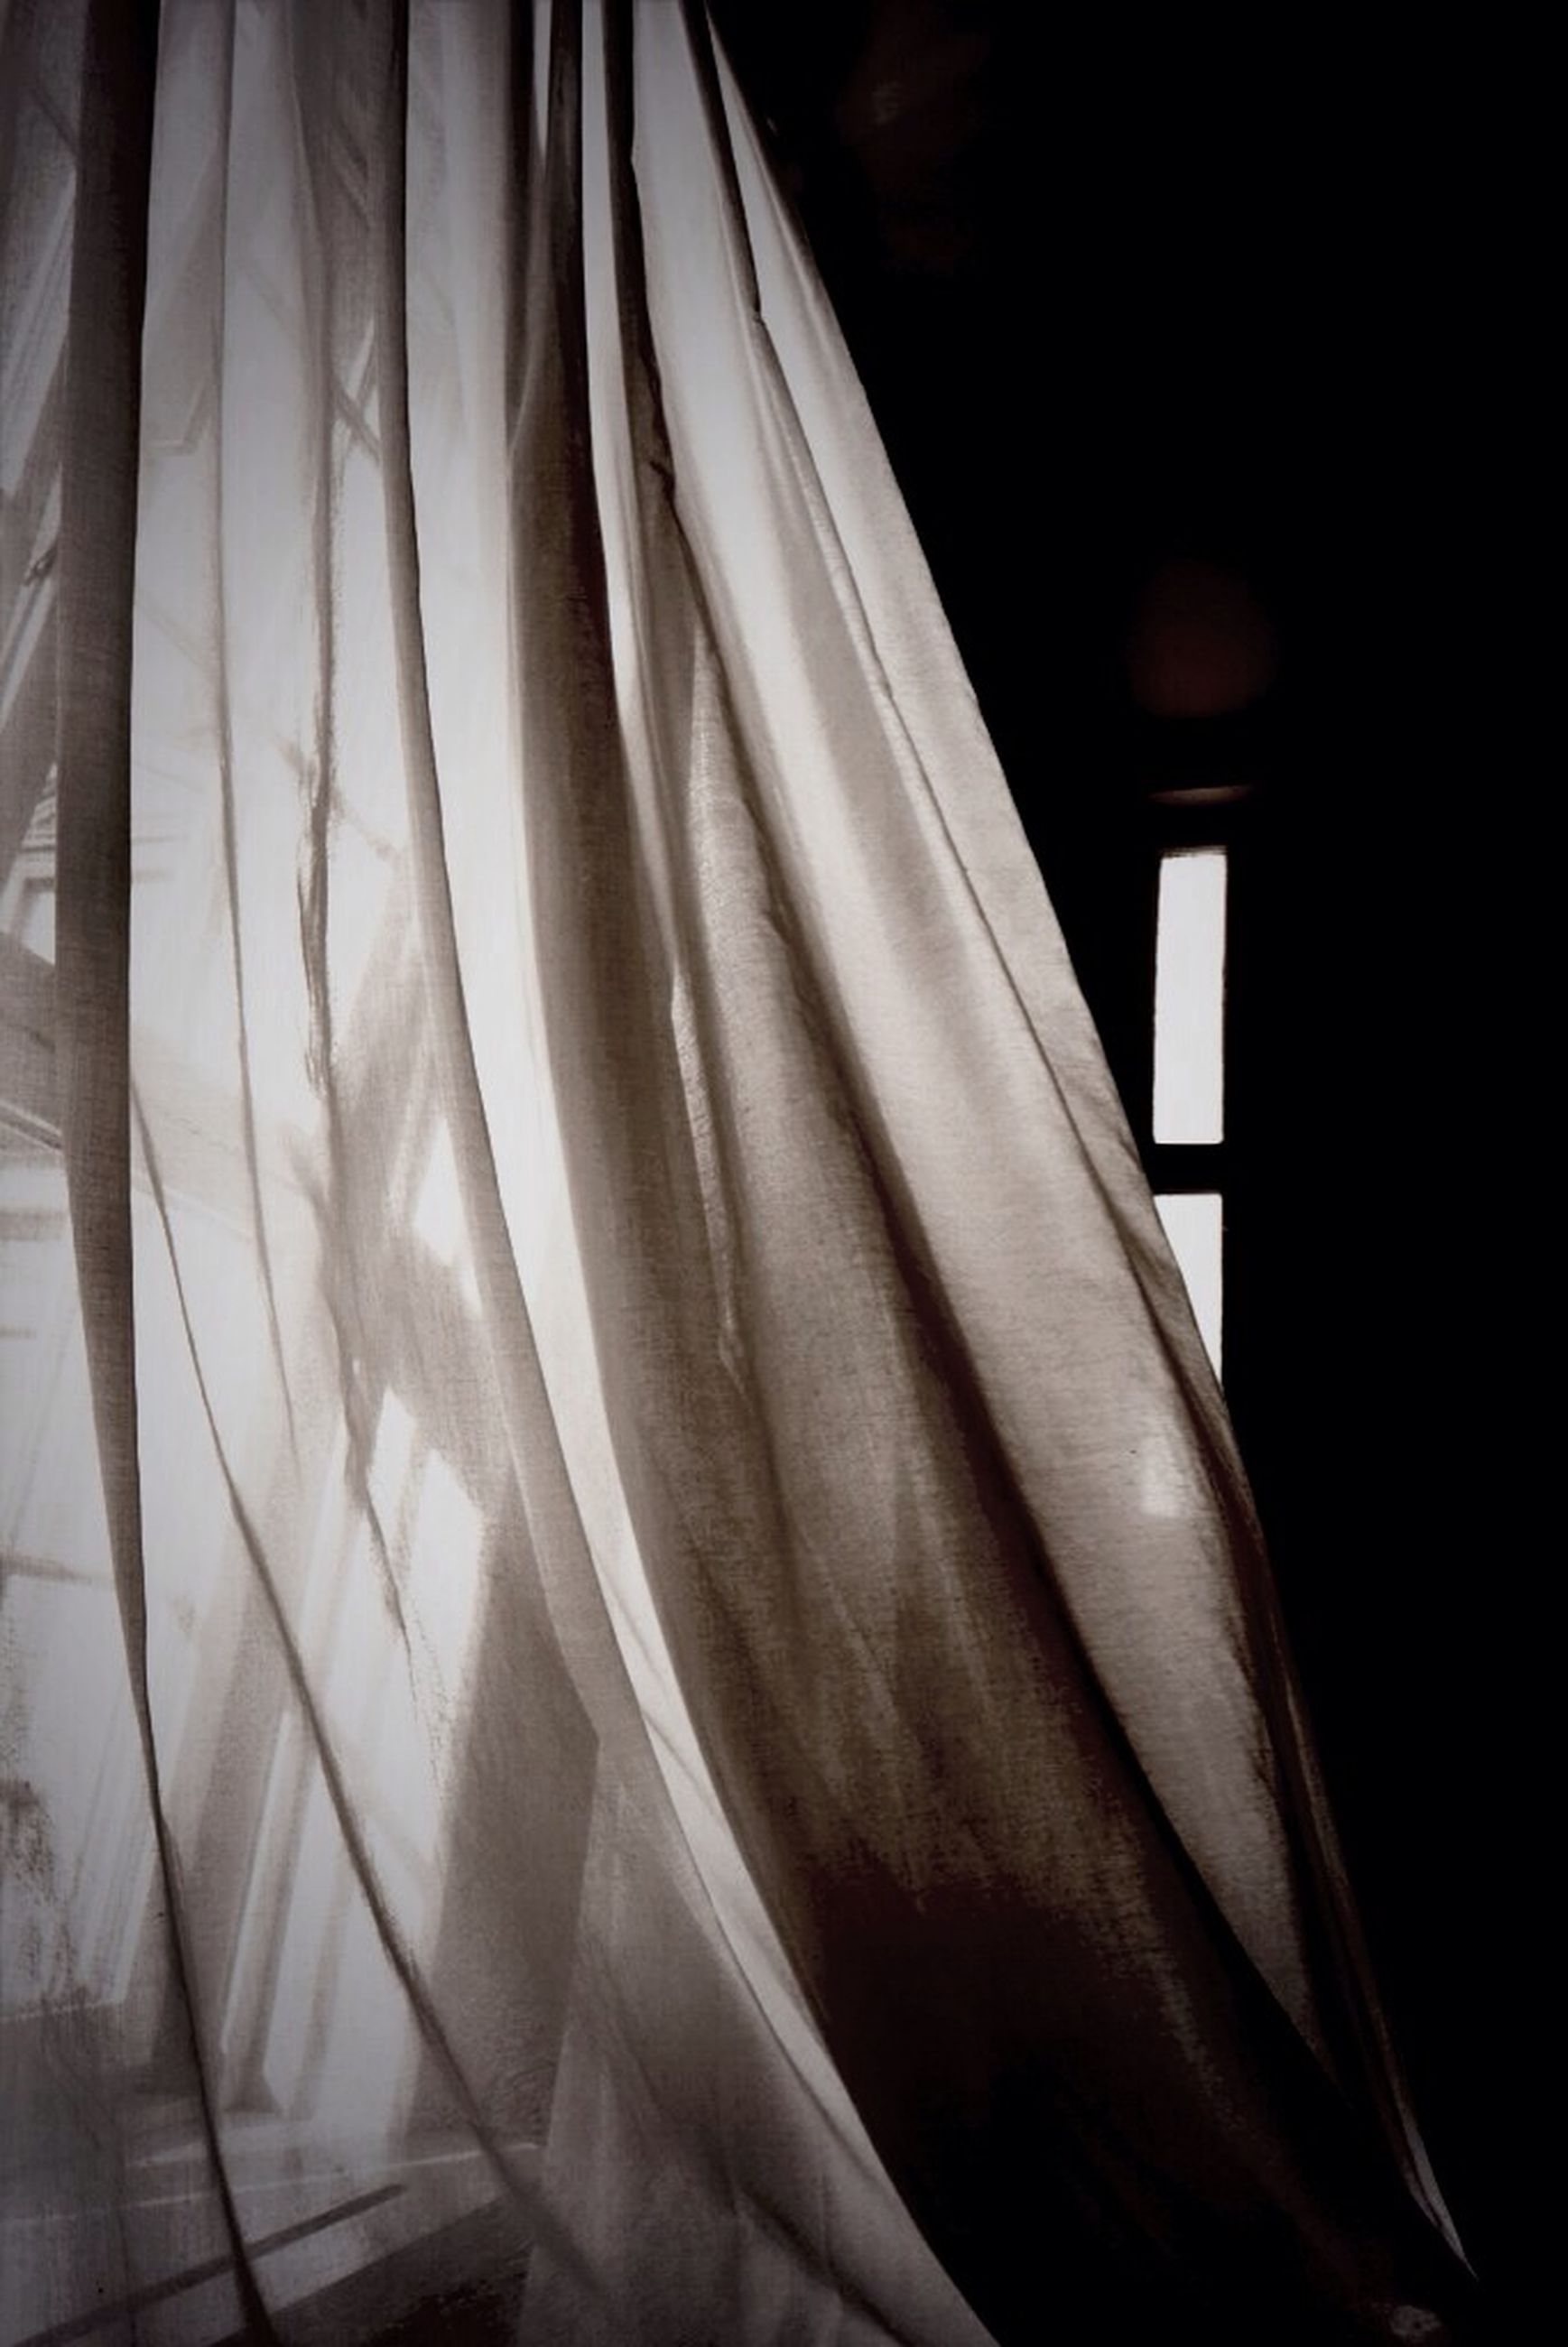 indoors, curtain, textile, fabric, home interior, close-up, white color, still life, hanging, clothing, no people, window, white, paper, bedroom, domestic room, bed, sheet, day, book